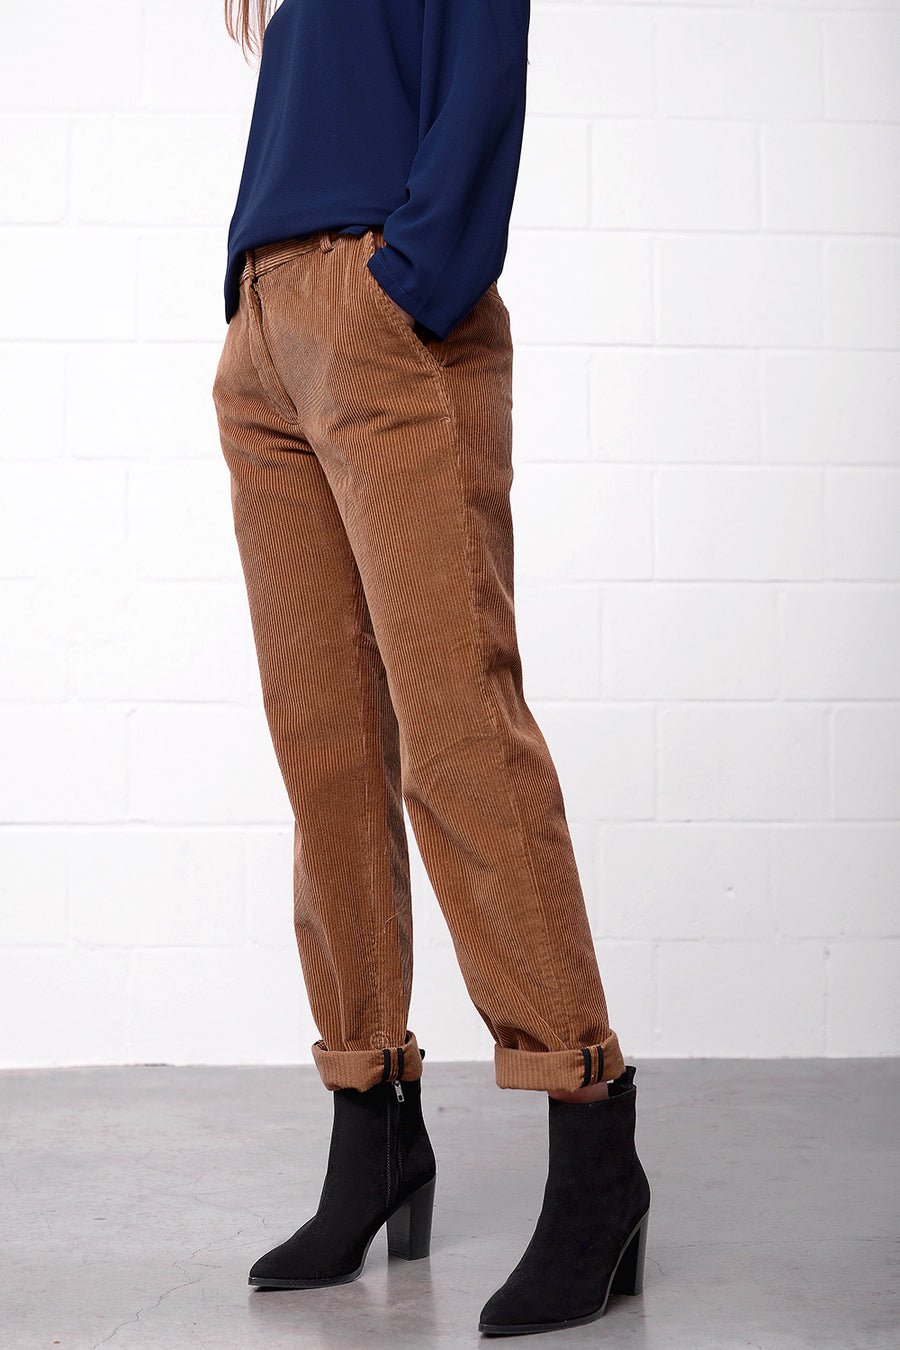 Peria Pants - camello